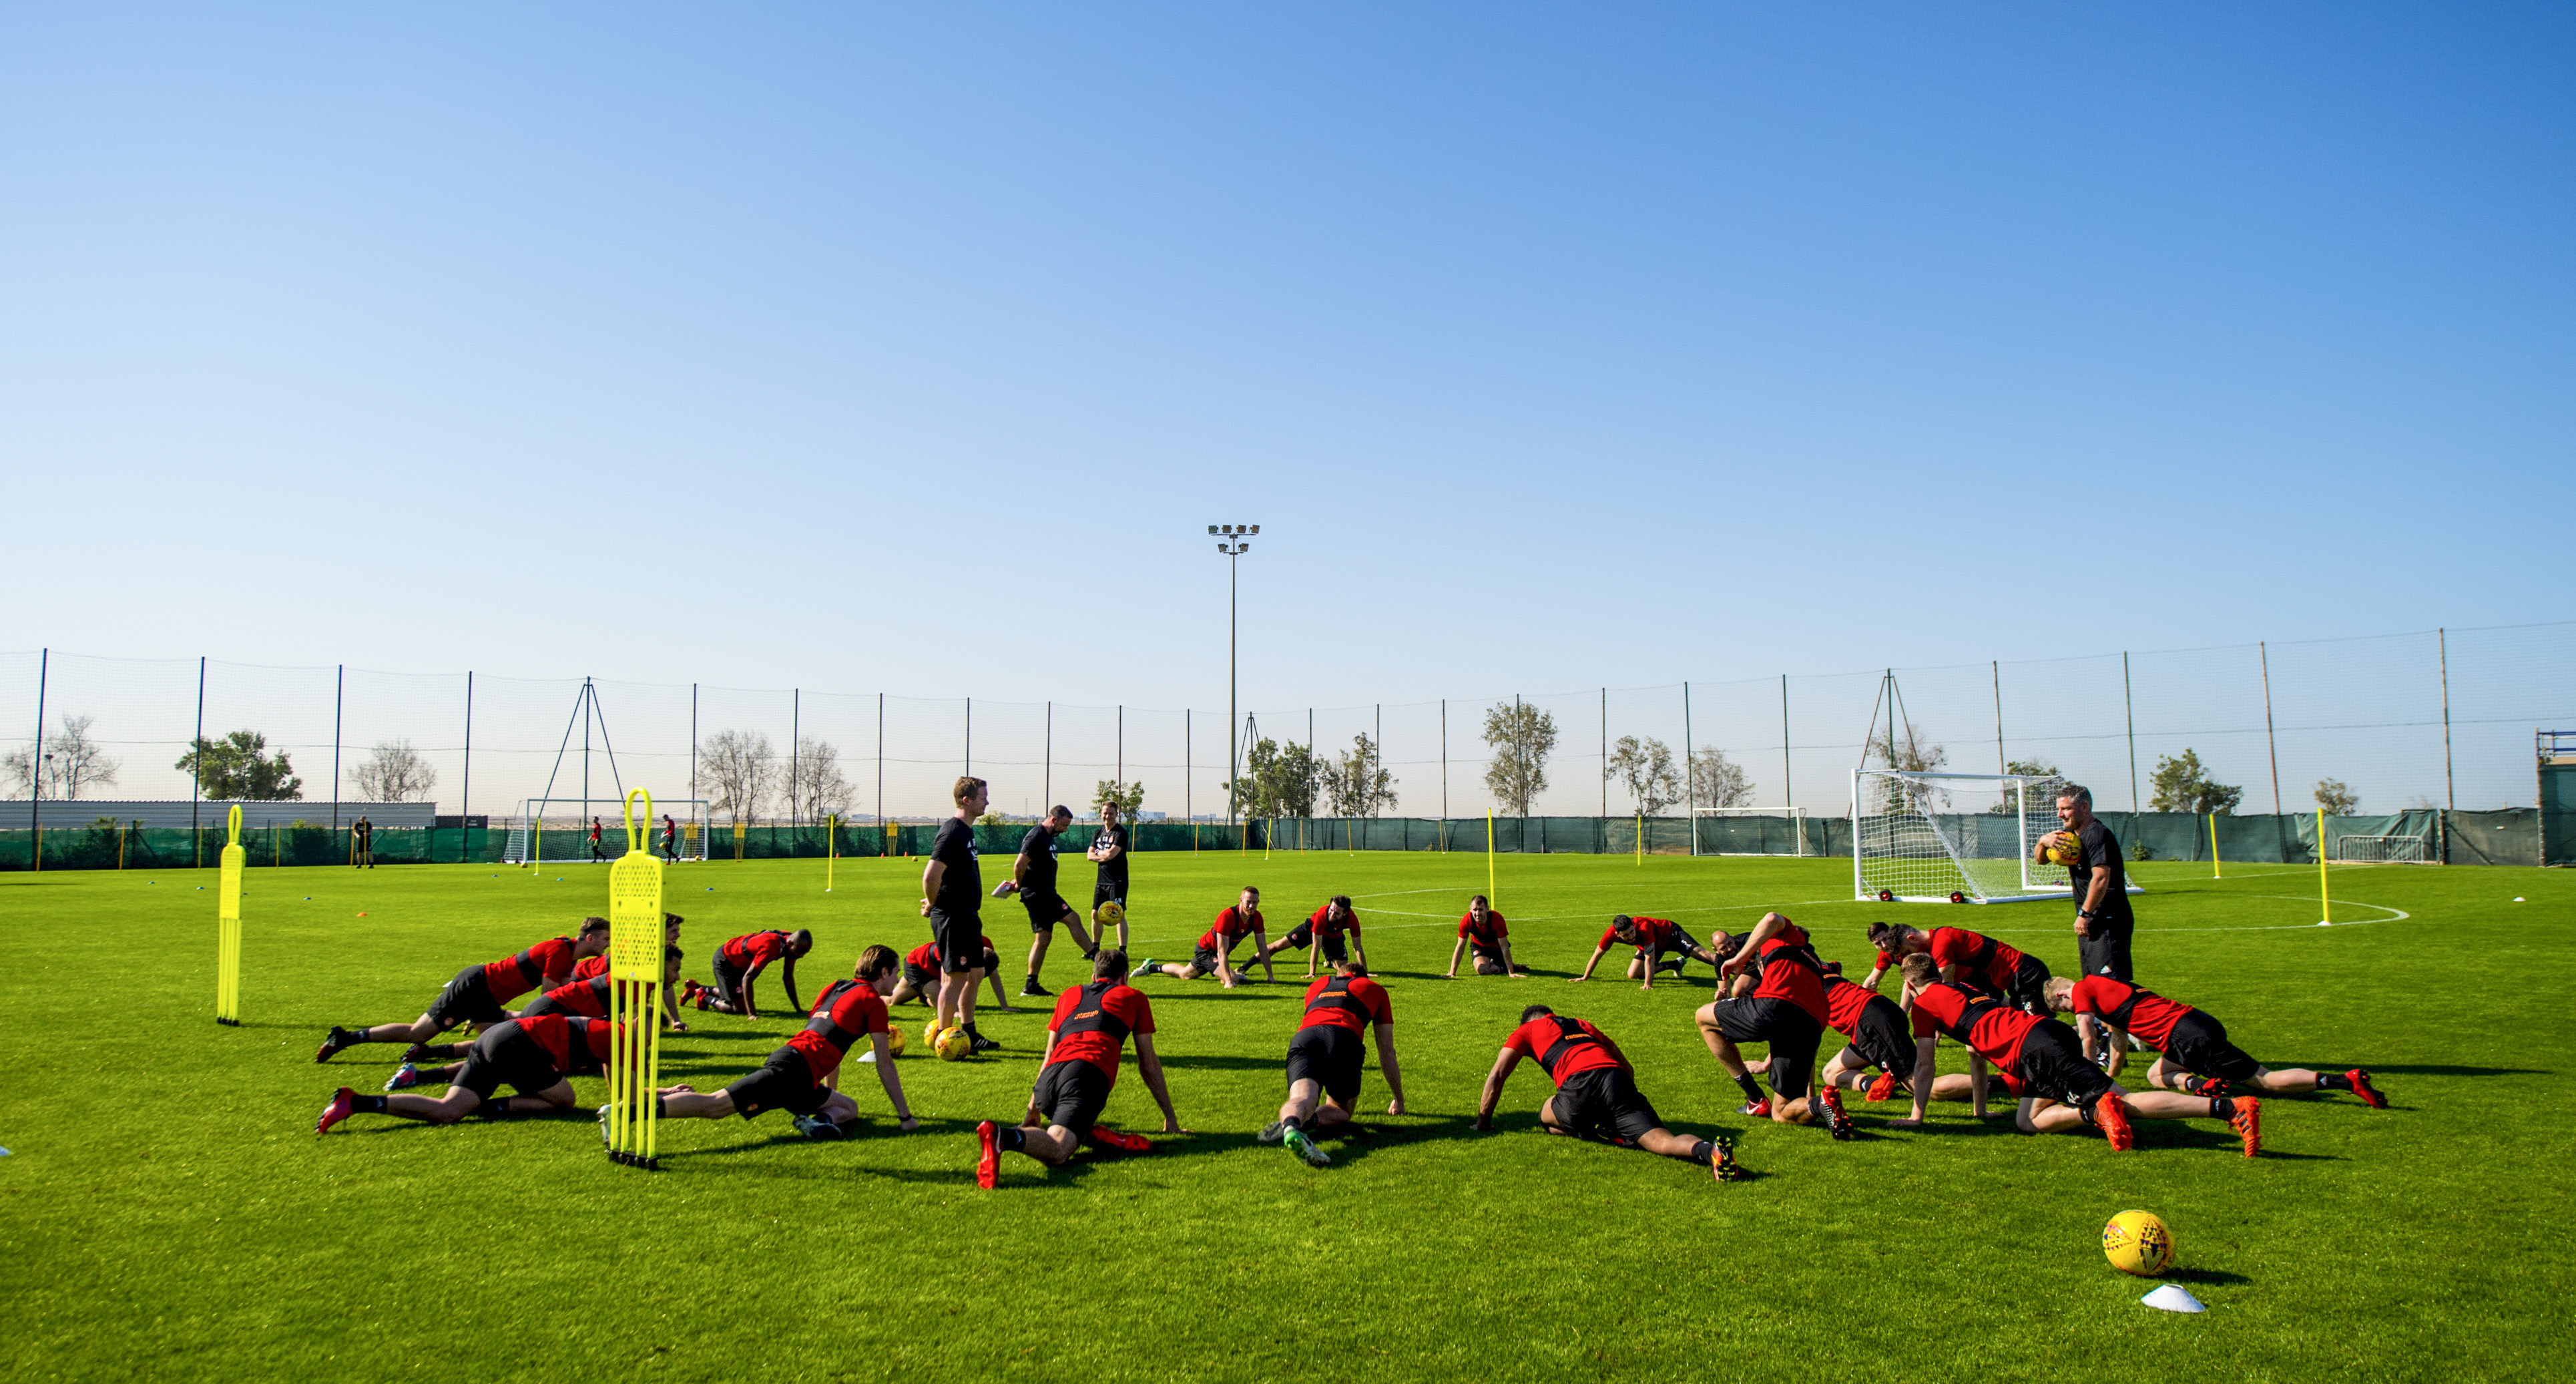 The Aberdeen players stretch during training in Dubai last year.